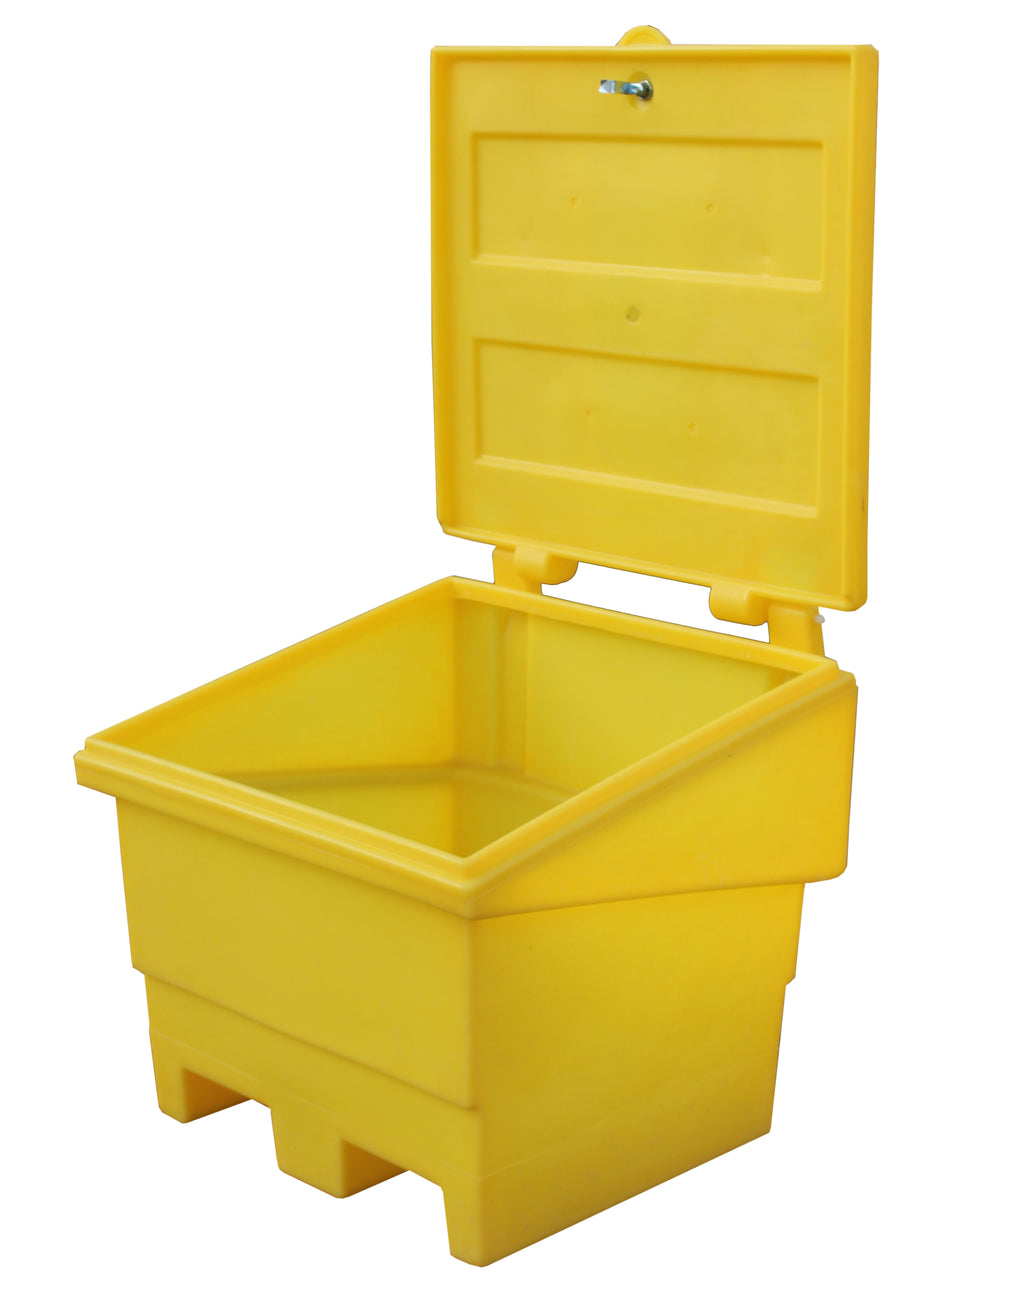 Rock Salt Bin with Lockable Lid - GRITBIN ||L865mm x W790mm x H820mm